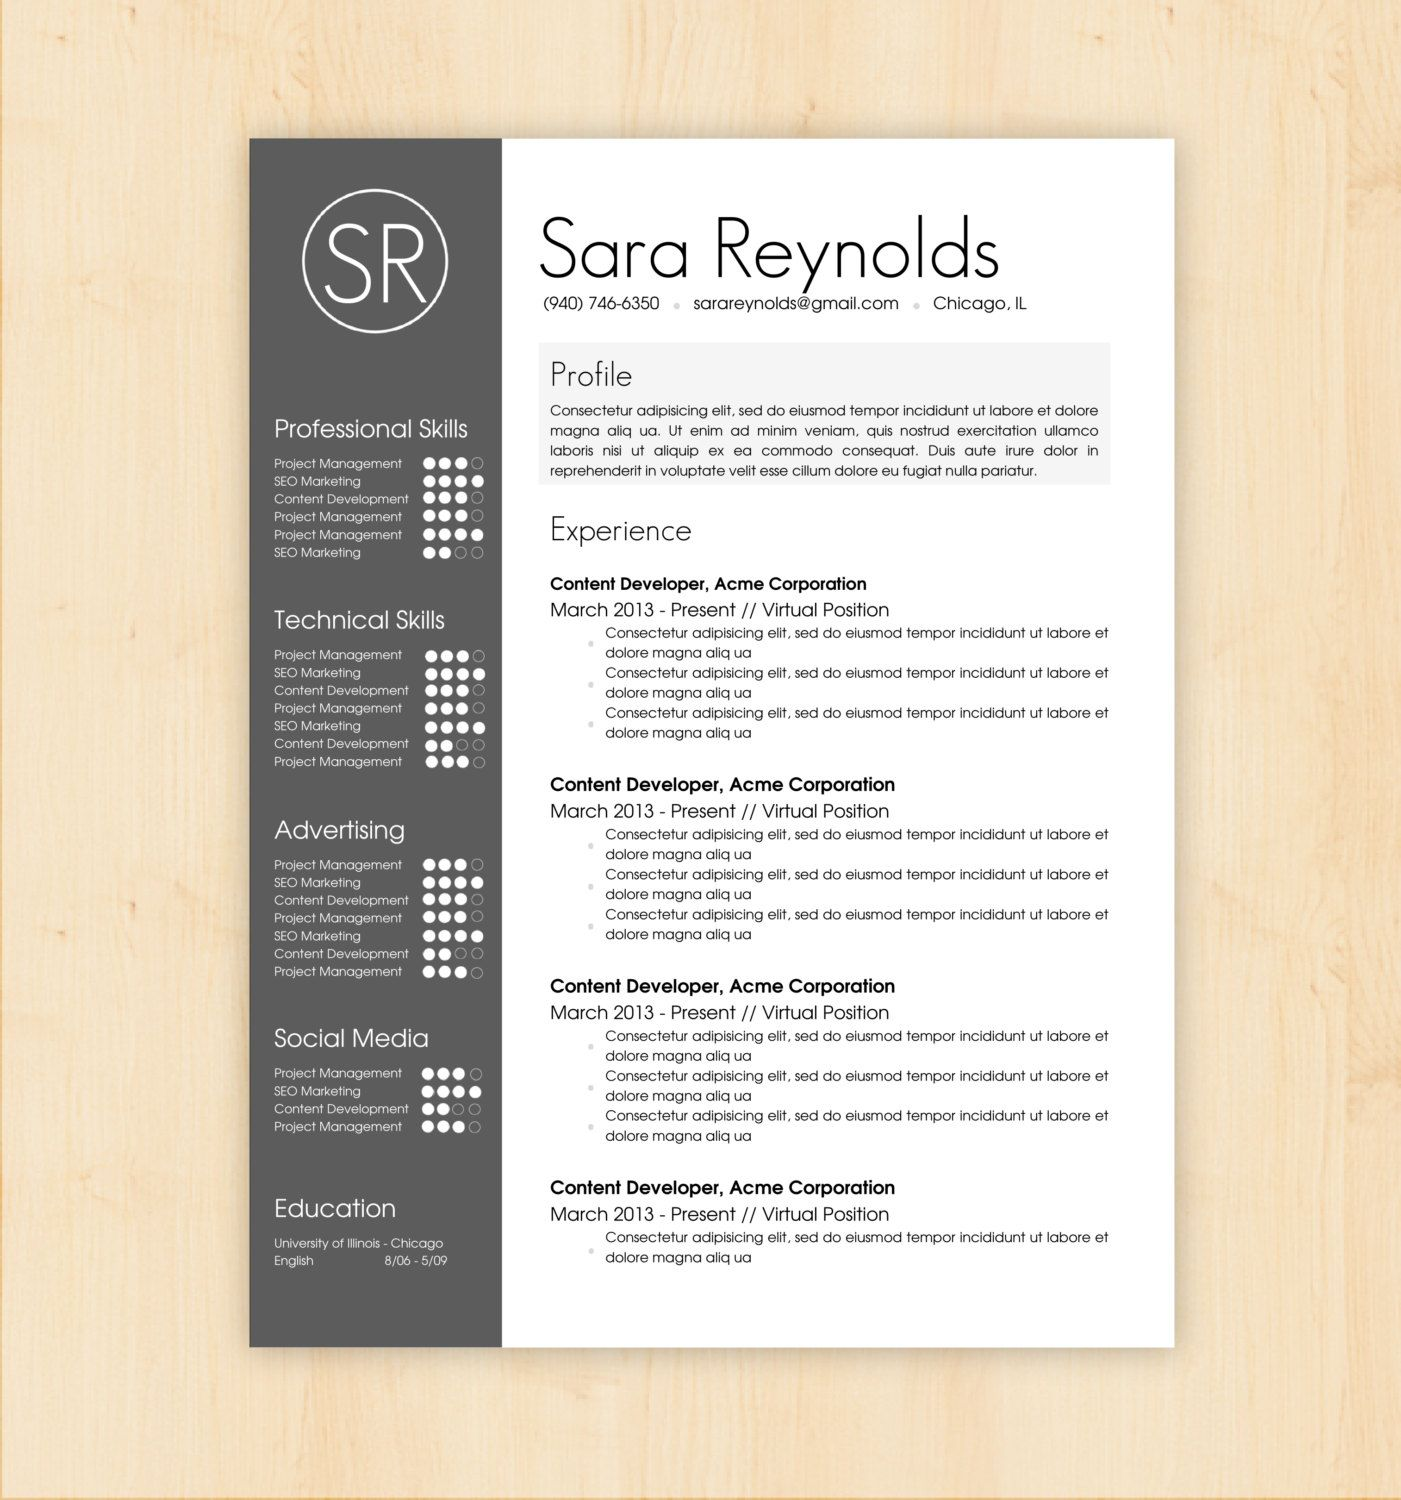 resume template cover letter template the sara reynolds resume resume template cv template the sara reynolds by phdpress 16 00